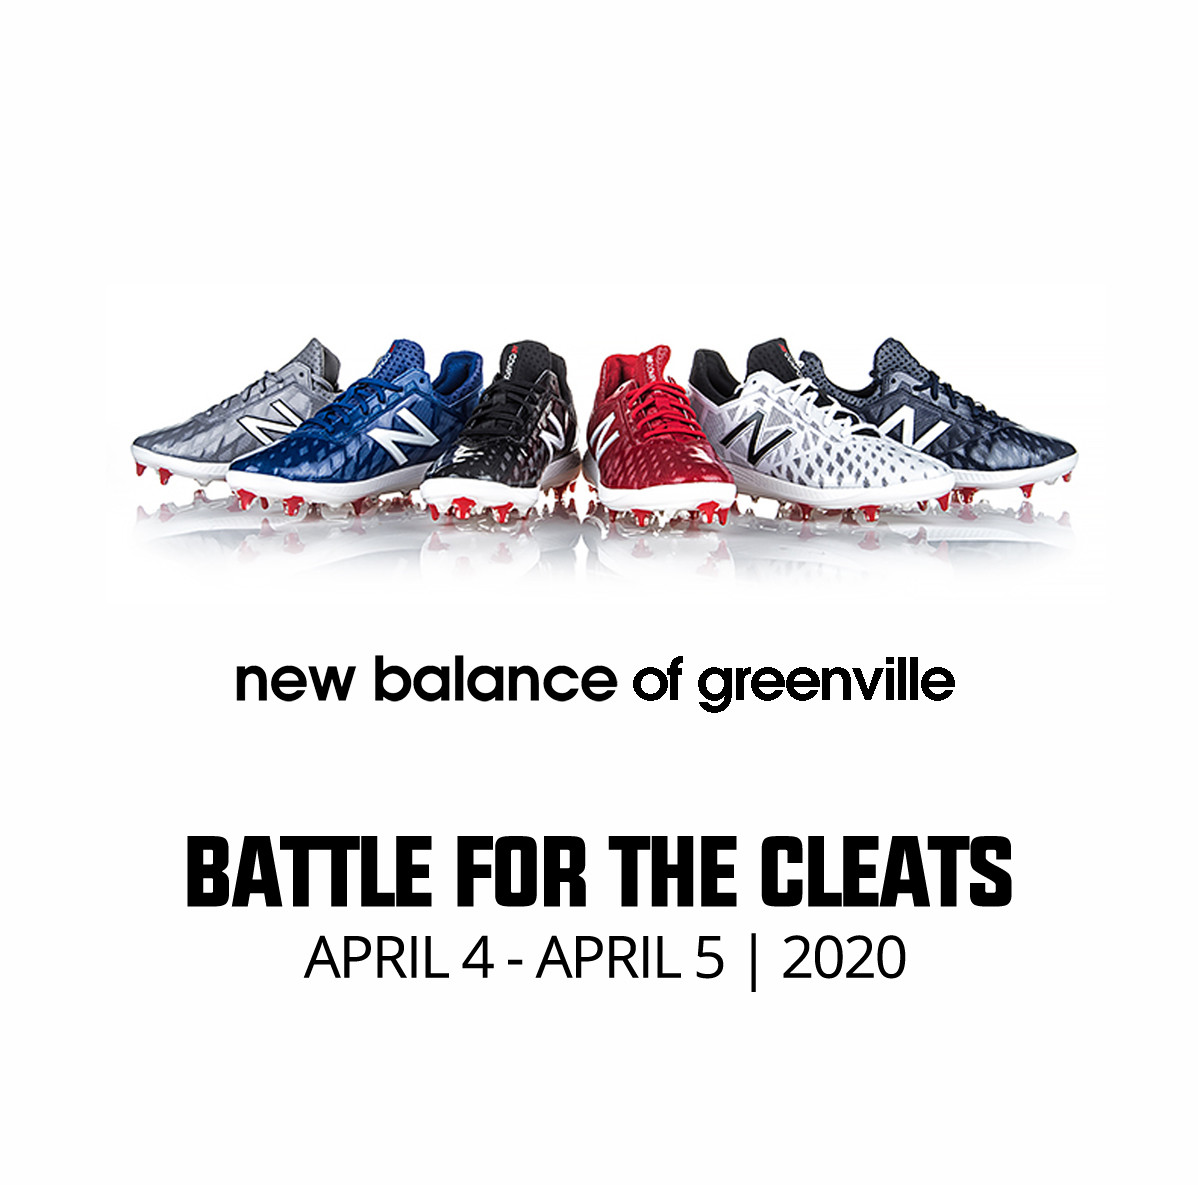 UPSTATE - BATTLE FOR THE CLEATS